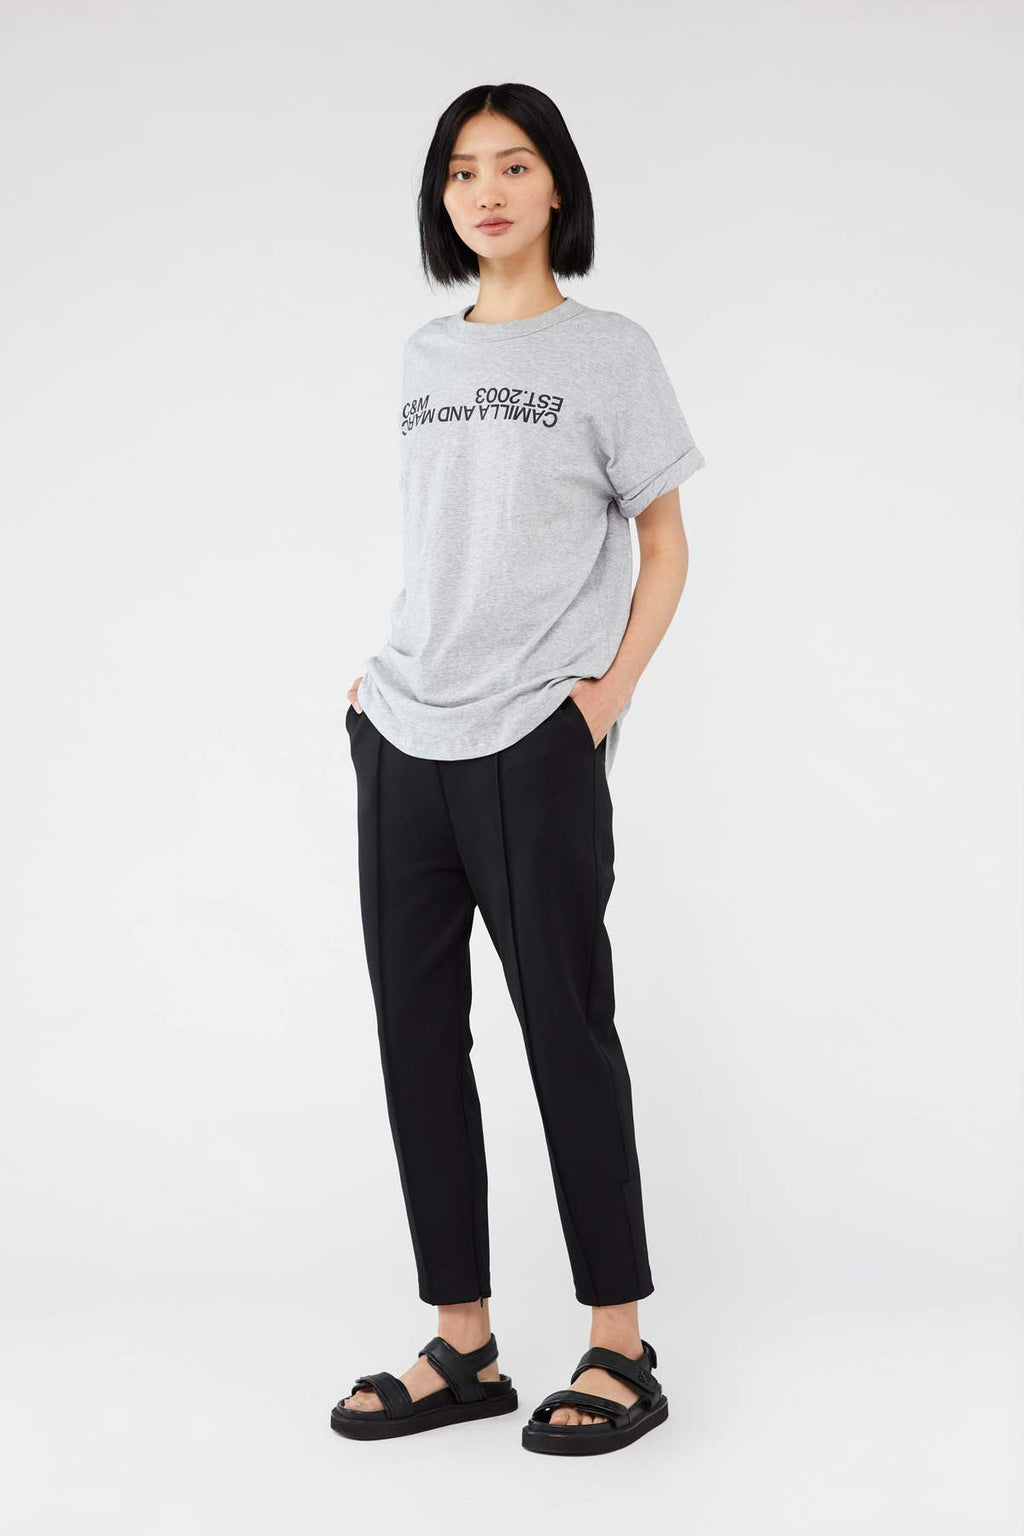 Camilla & Marc Huntington Tee 2.0 in Grey with Black